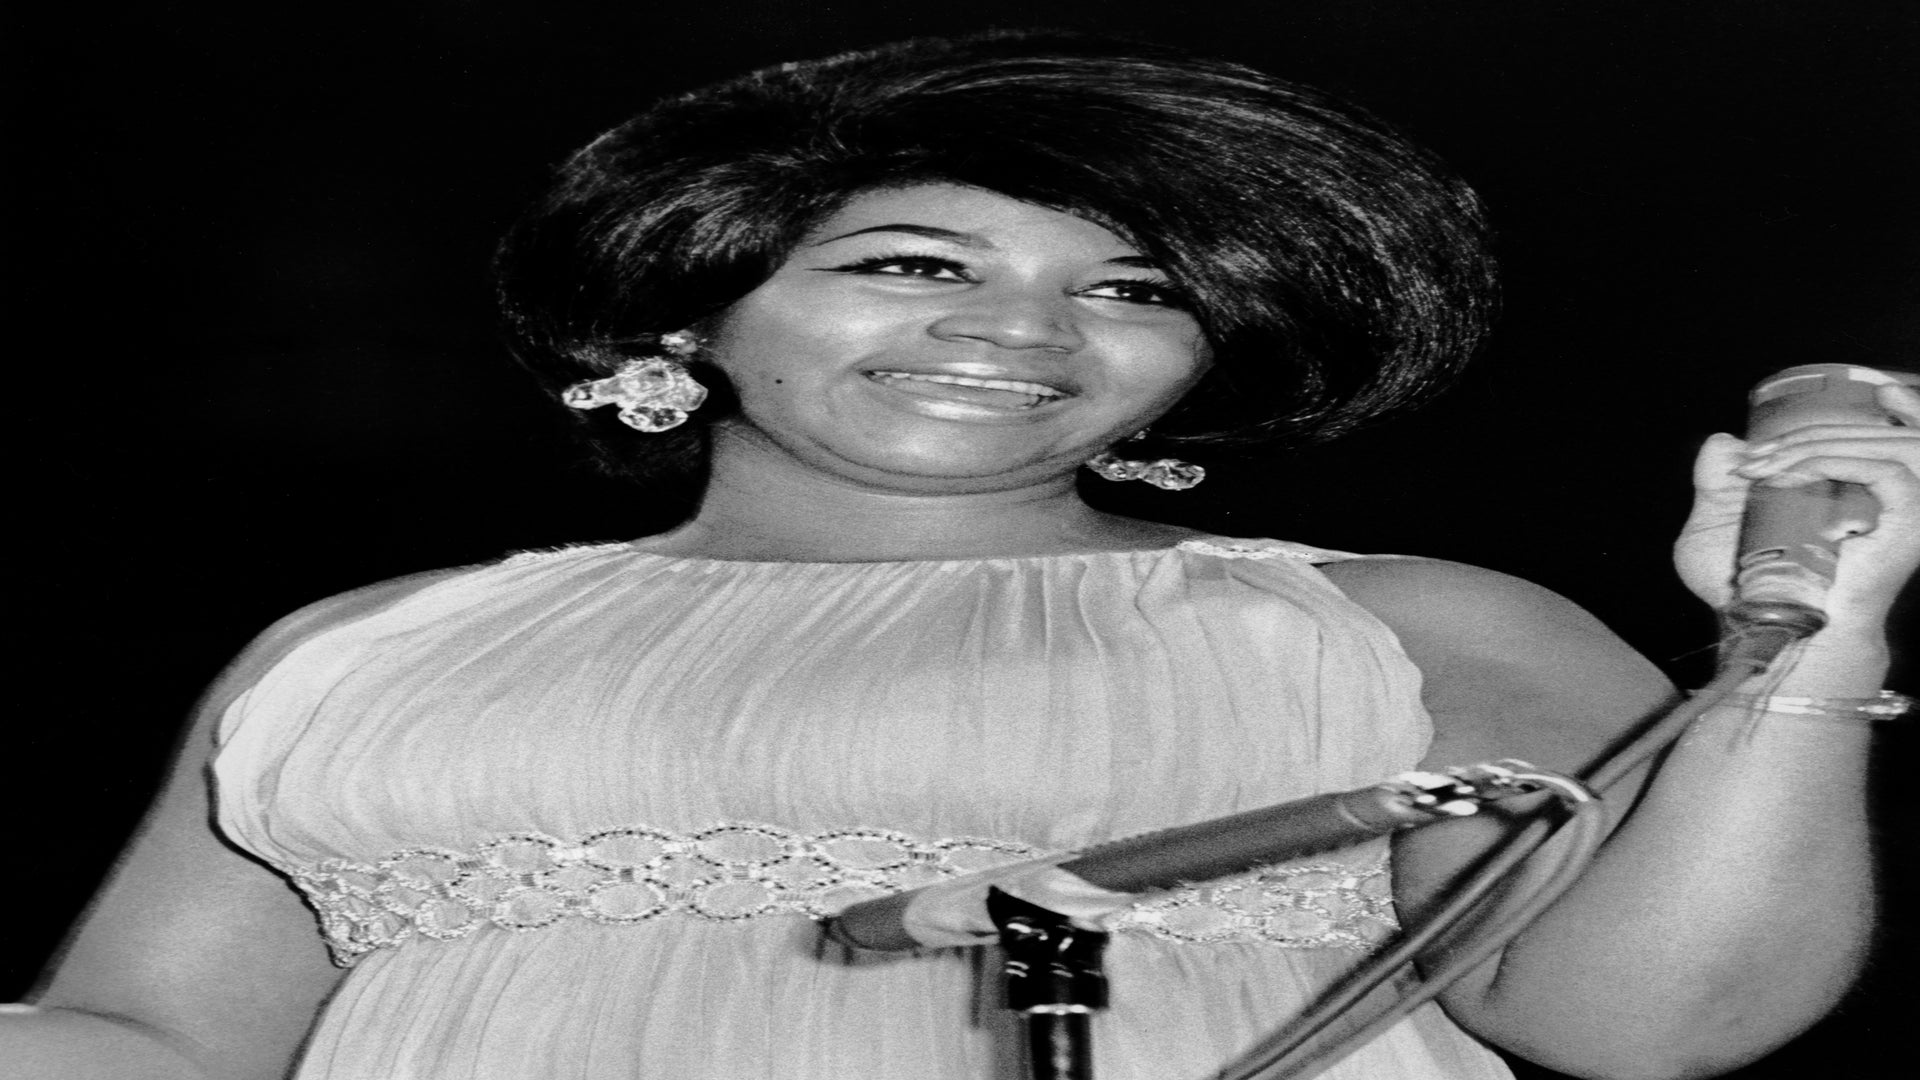 Family And Friends Say Their Final Goodbyes To Queen Of Soul Aretha Franklin